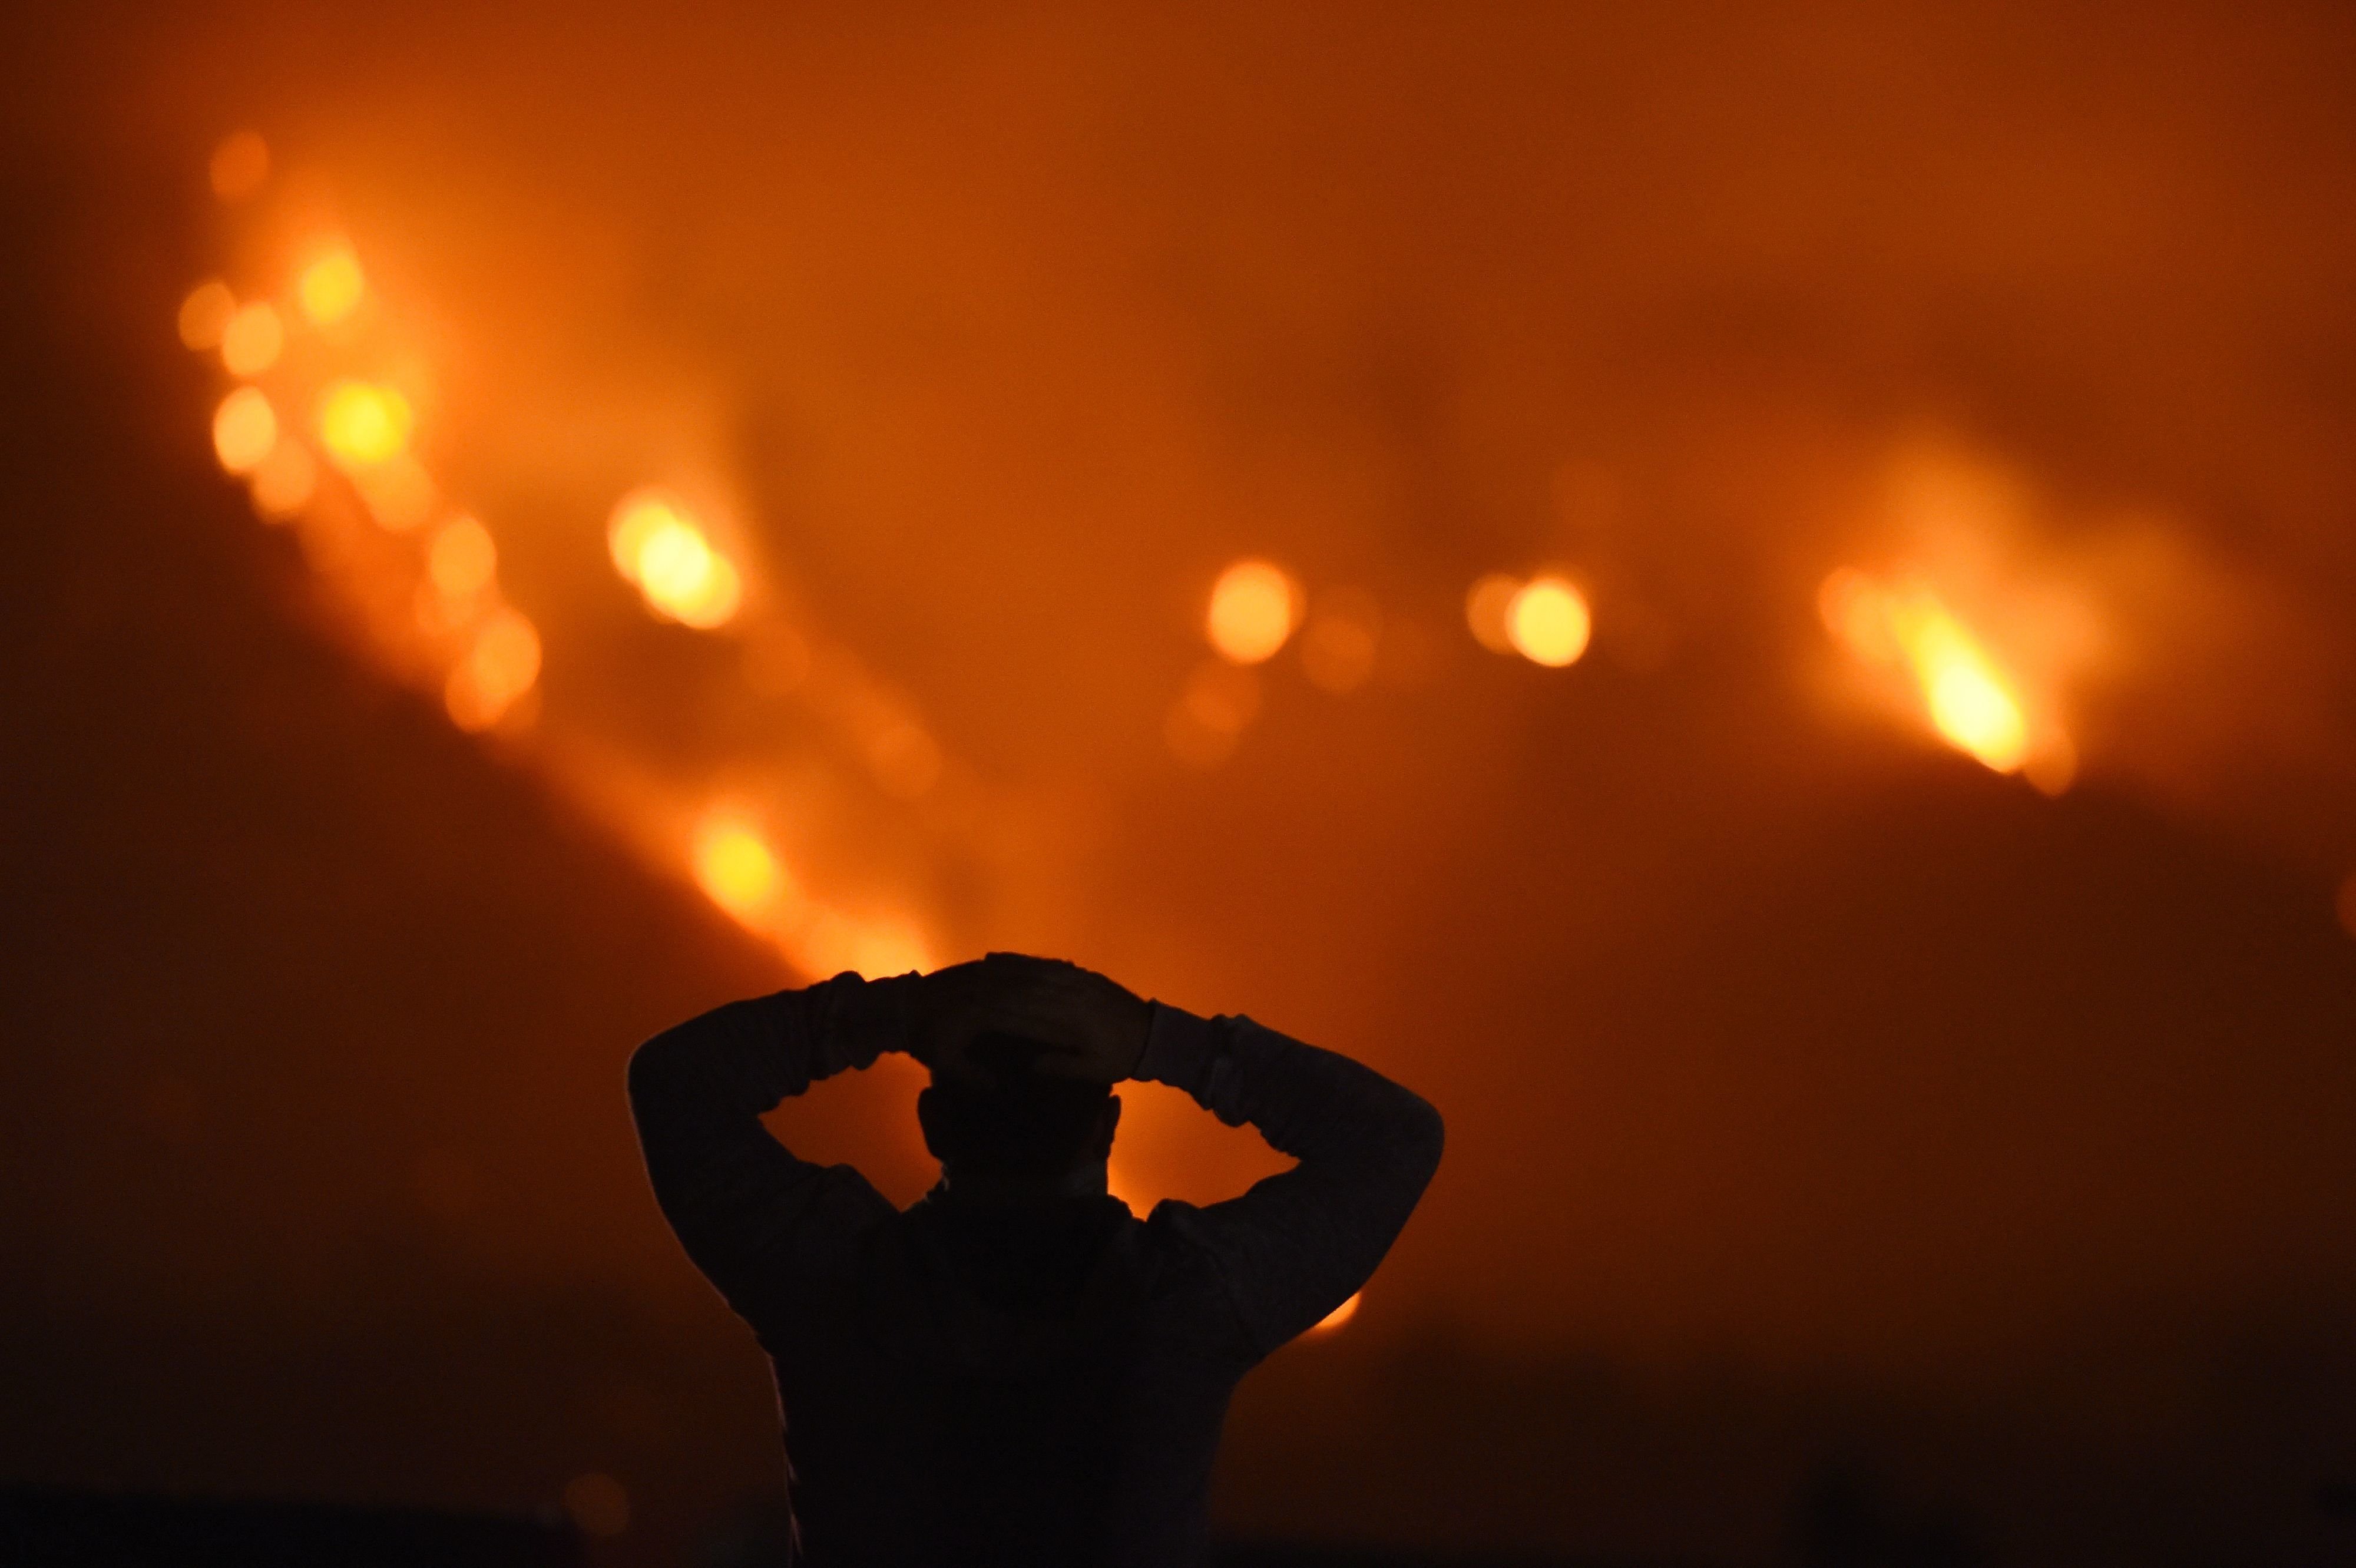 TOPSHOT - A man watches the Thomas Fire in the hills above Carpinteria, California, December 11, 2017. The Thomas Fire in California's Ventura and Santa Barbara counties has consumed more than 230,000 acres over the past week making it the fifth largest fire in the state's history. / AFP PHOTO / Robyn Beck        (Photo credit should read ROBYN BECK/AFP/Getty Images)